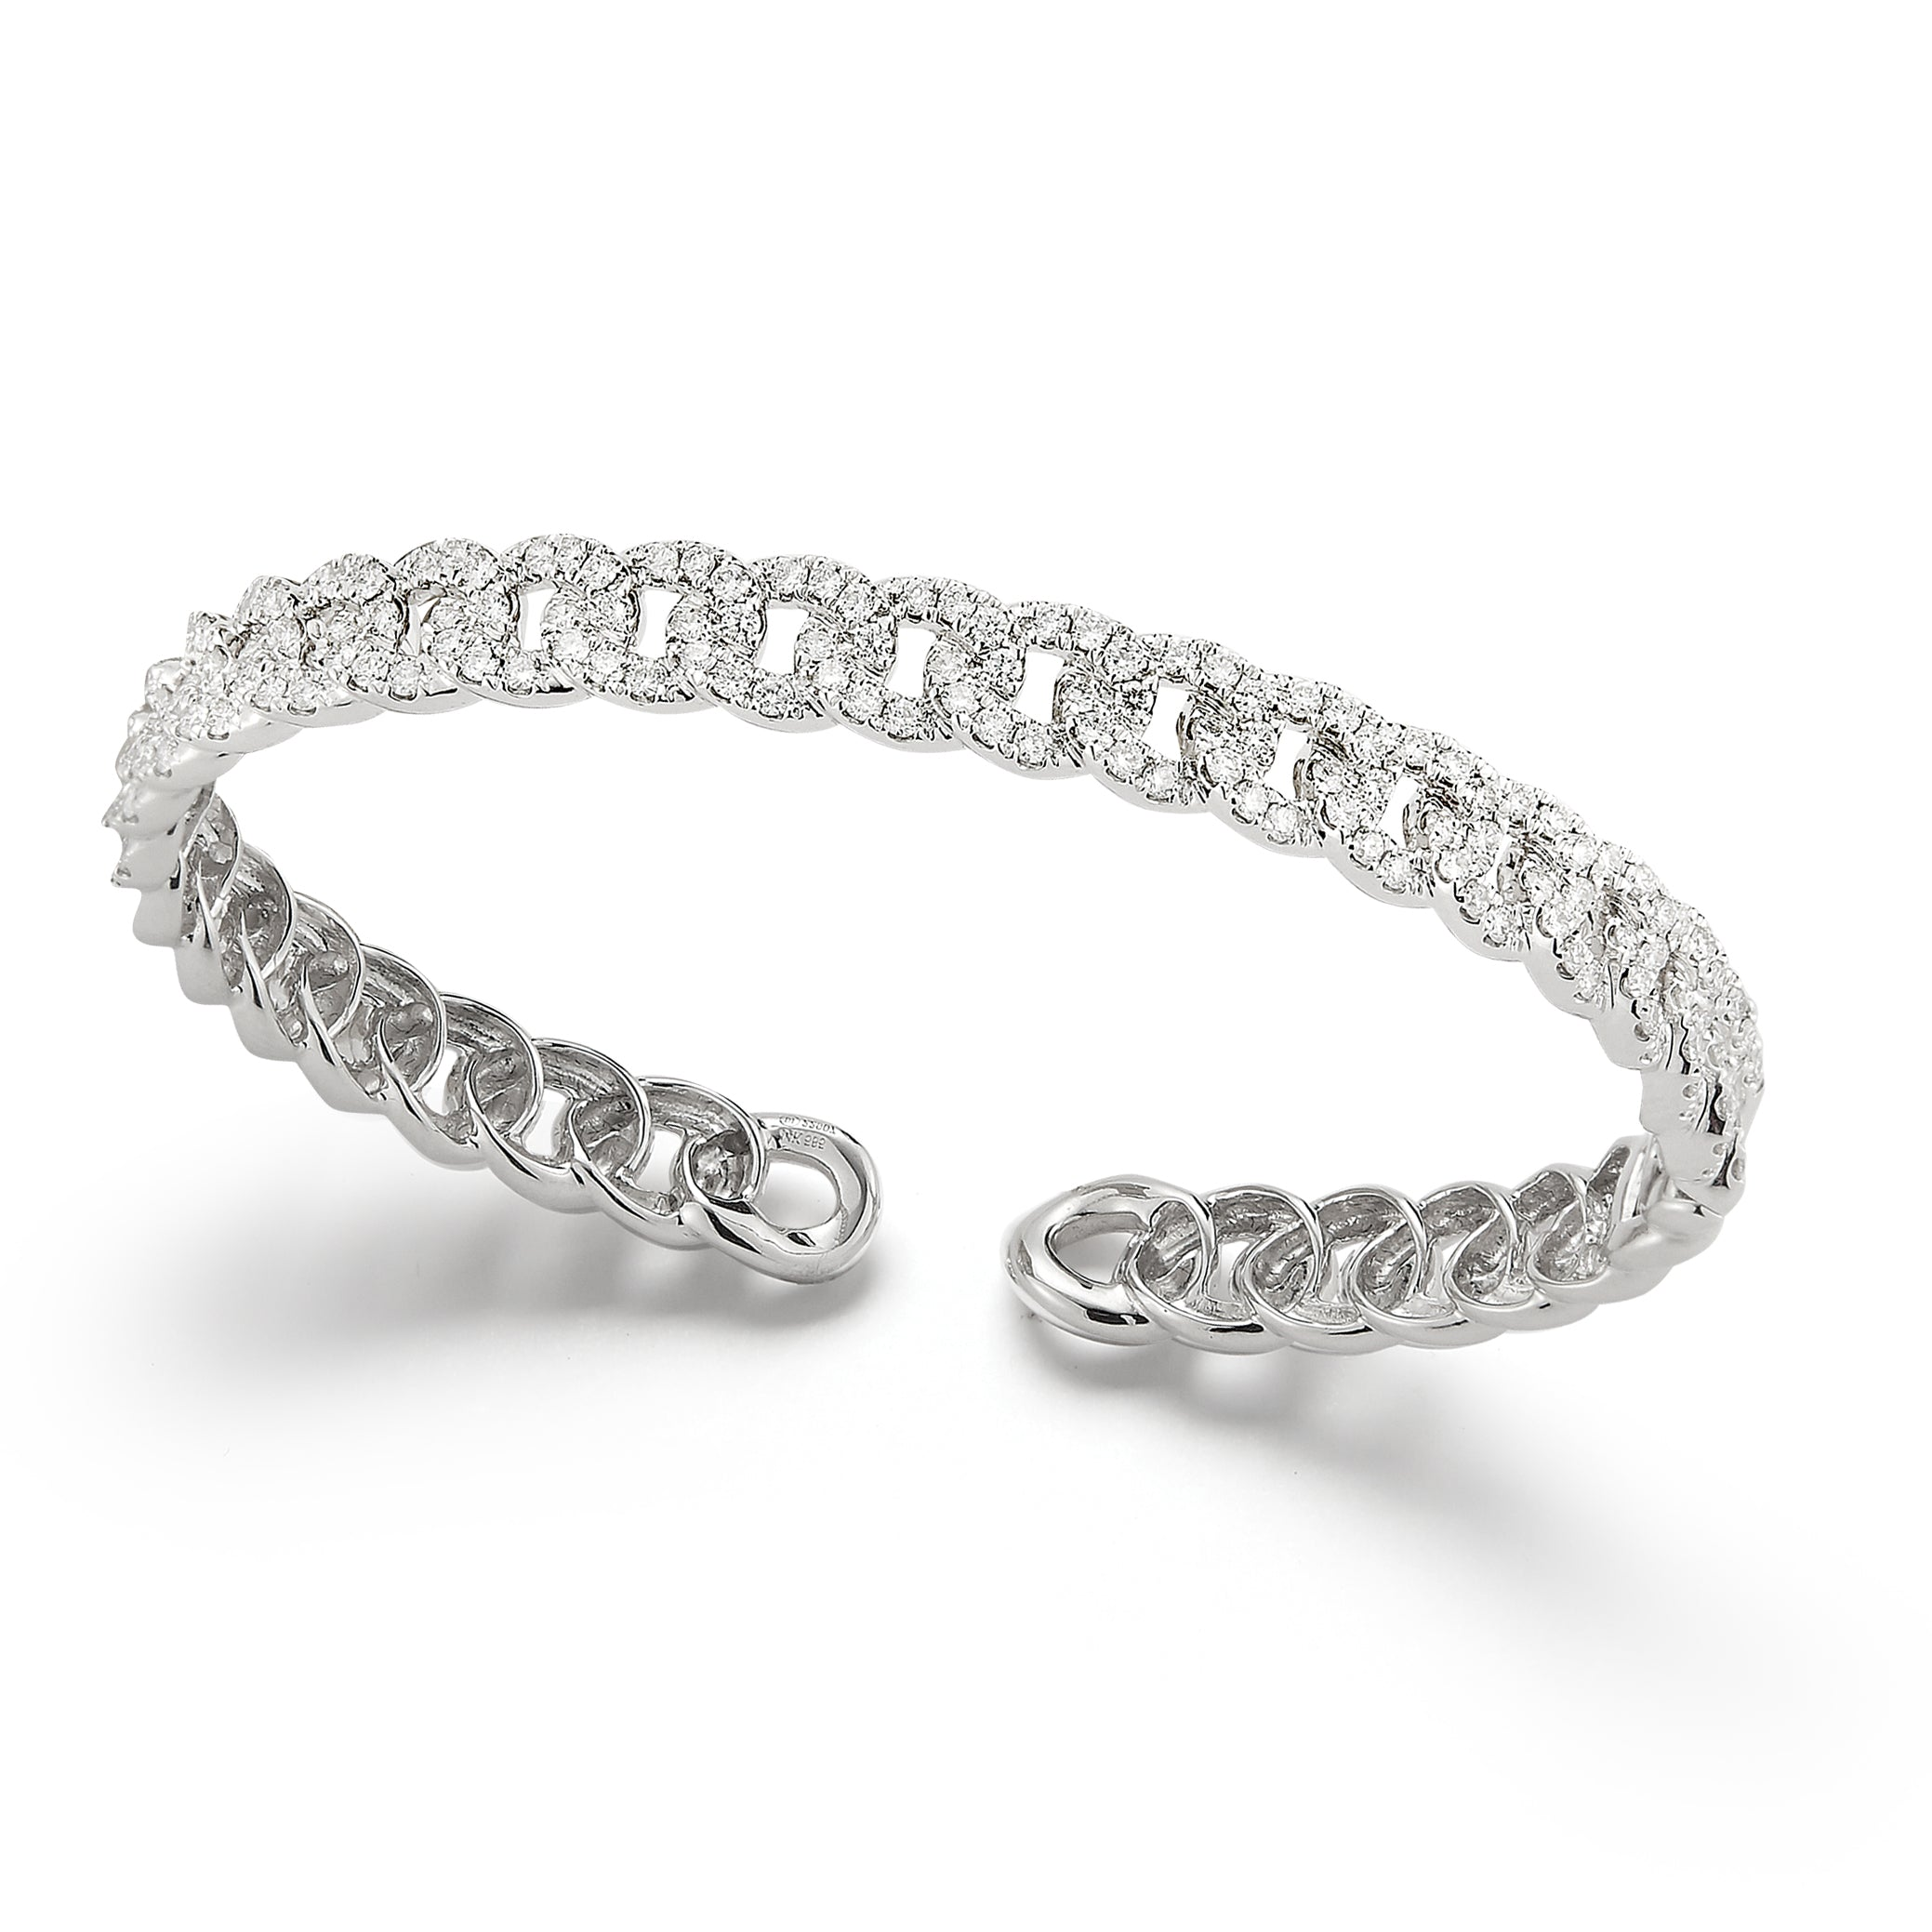 pave bracelet edition david diamond bangle limited jewelry yurman bangles white gold cable